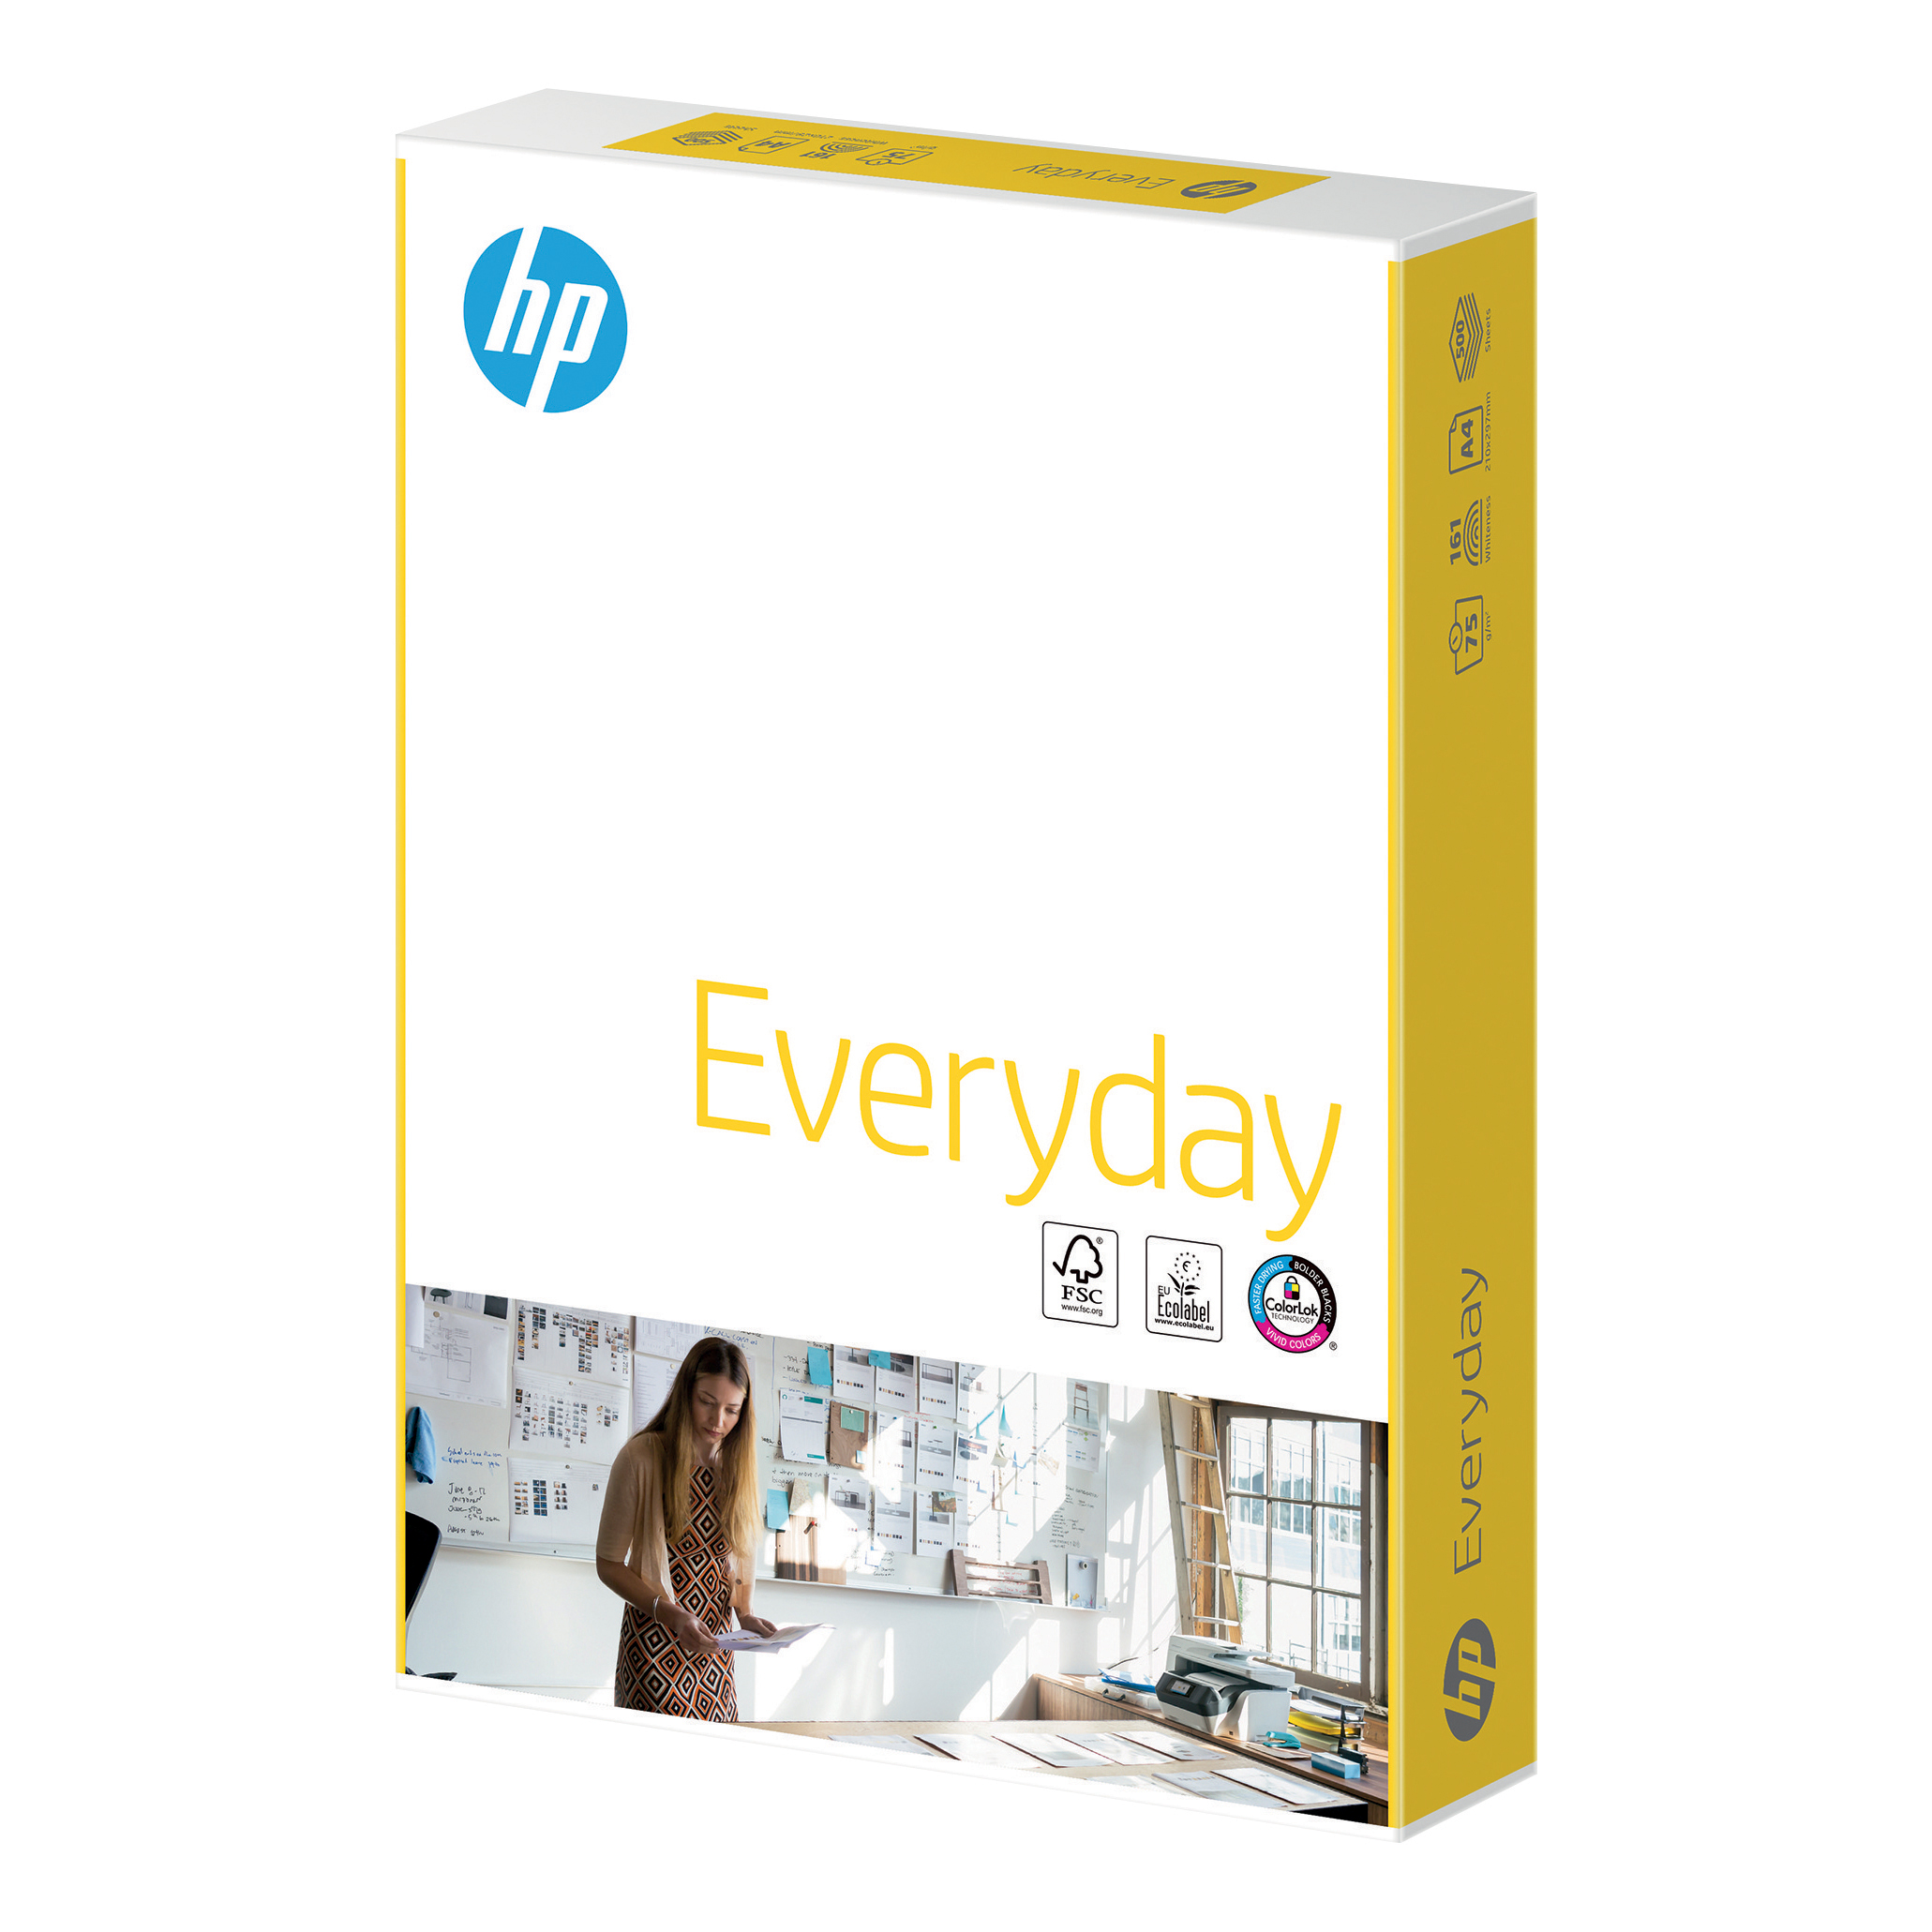 Hewlett Packard [HP] Everyday Paper PEFC Colorlok 75gsm A4 White Ref CHP650 [5 x 500 Sheets]